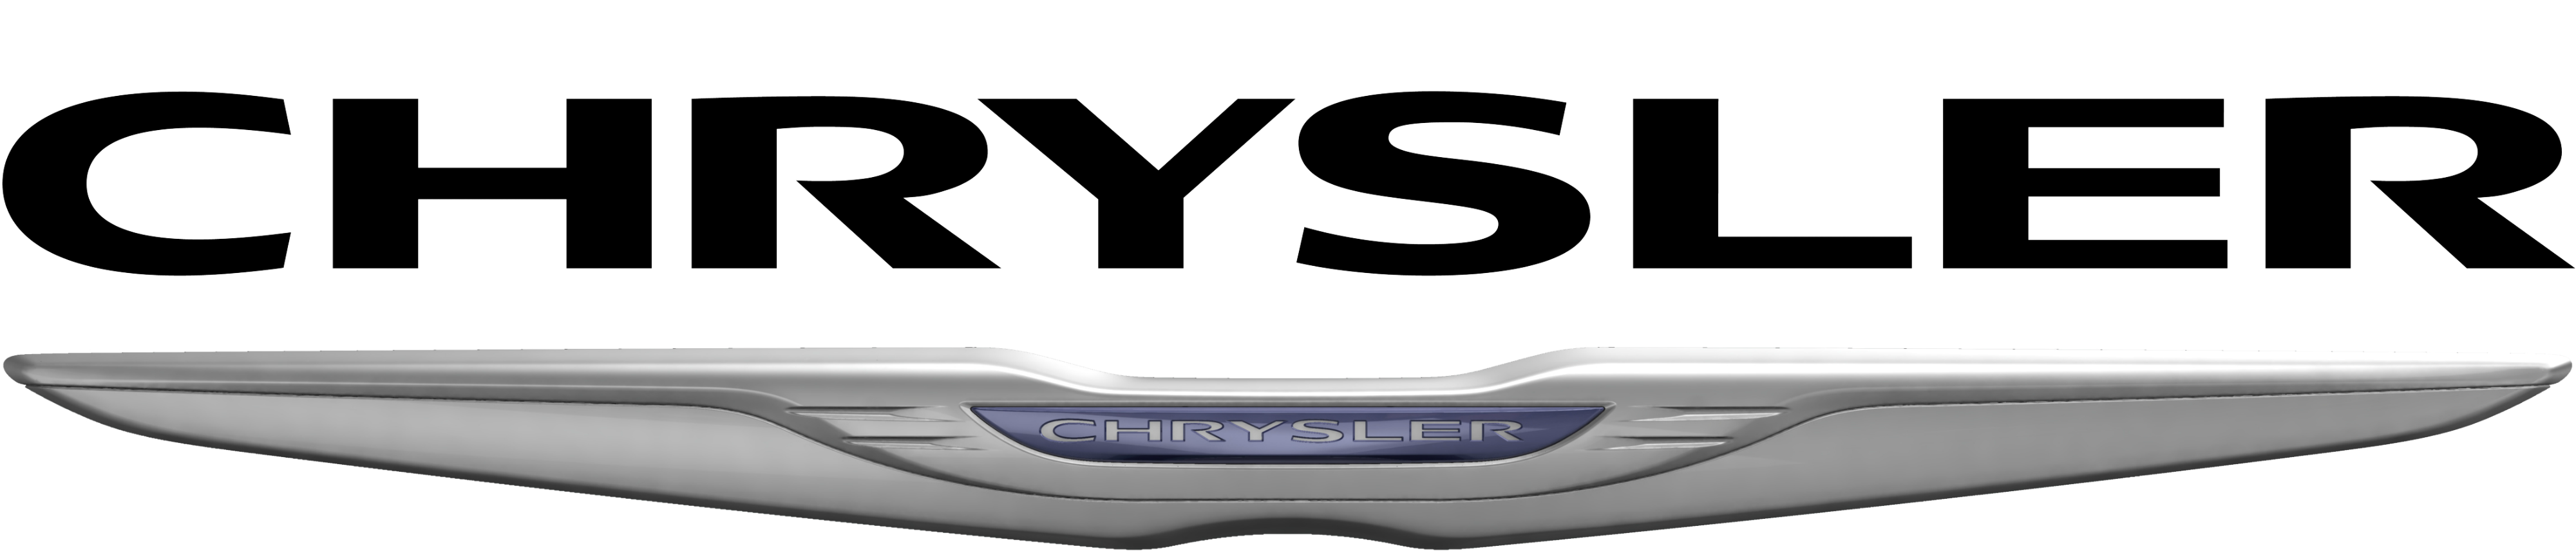 chrysler auto logo with - photo #13